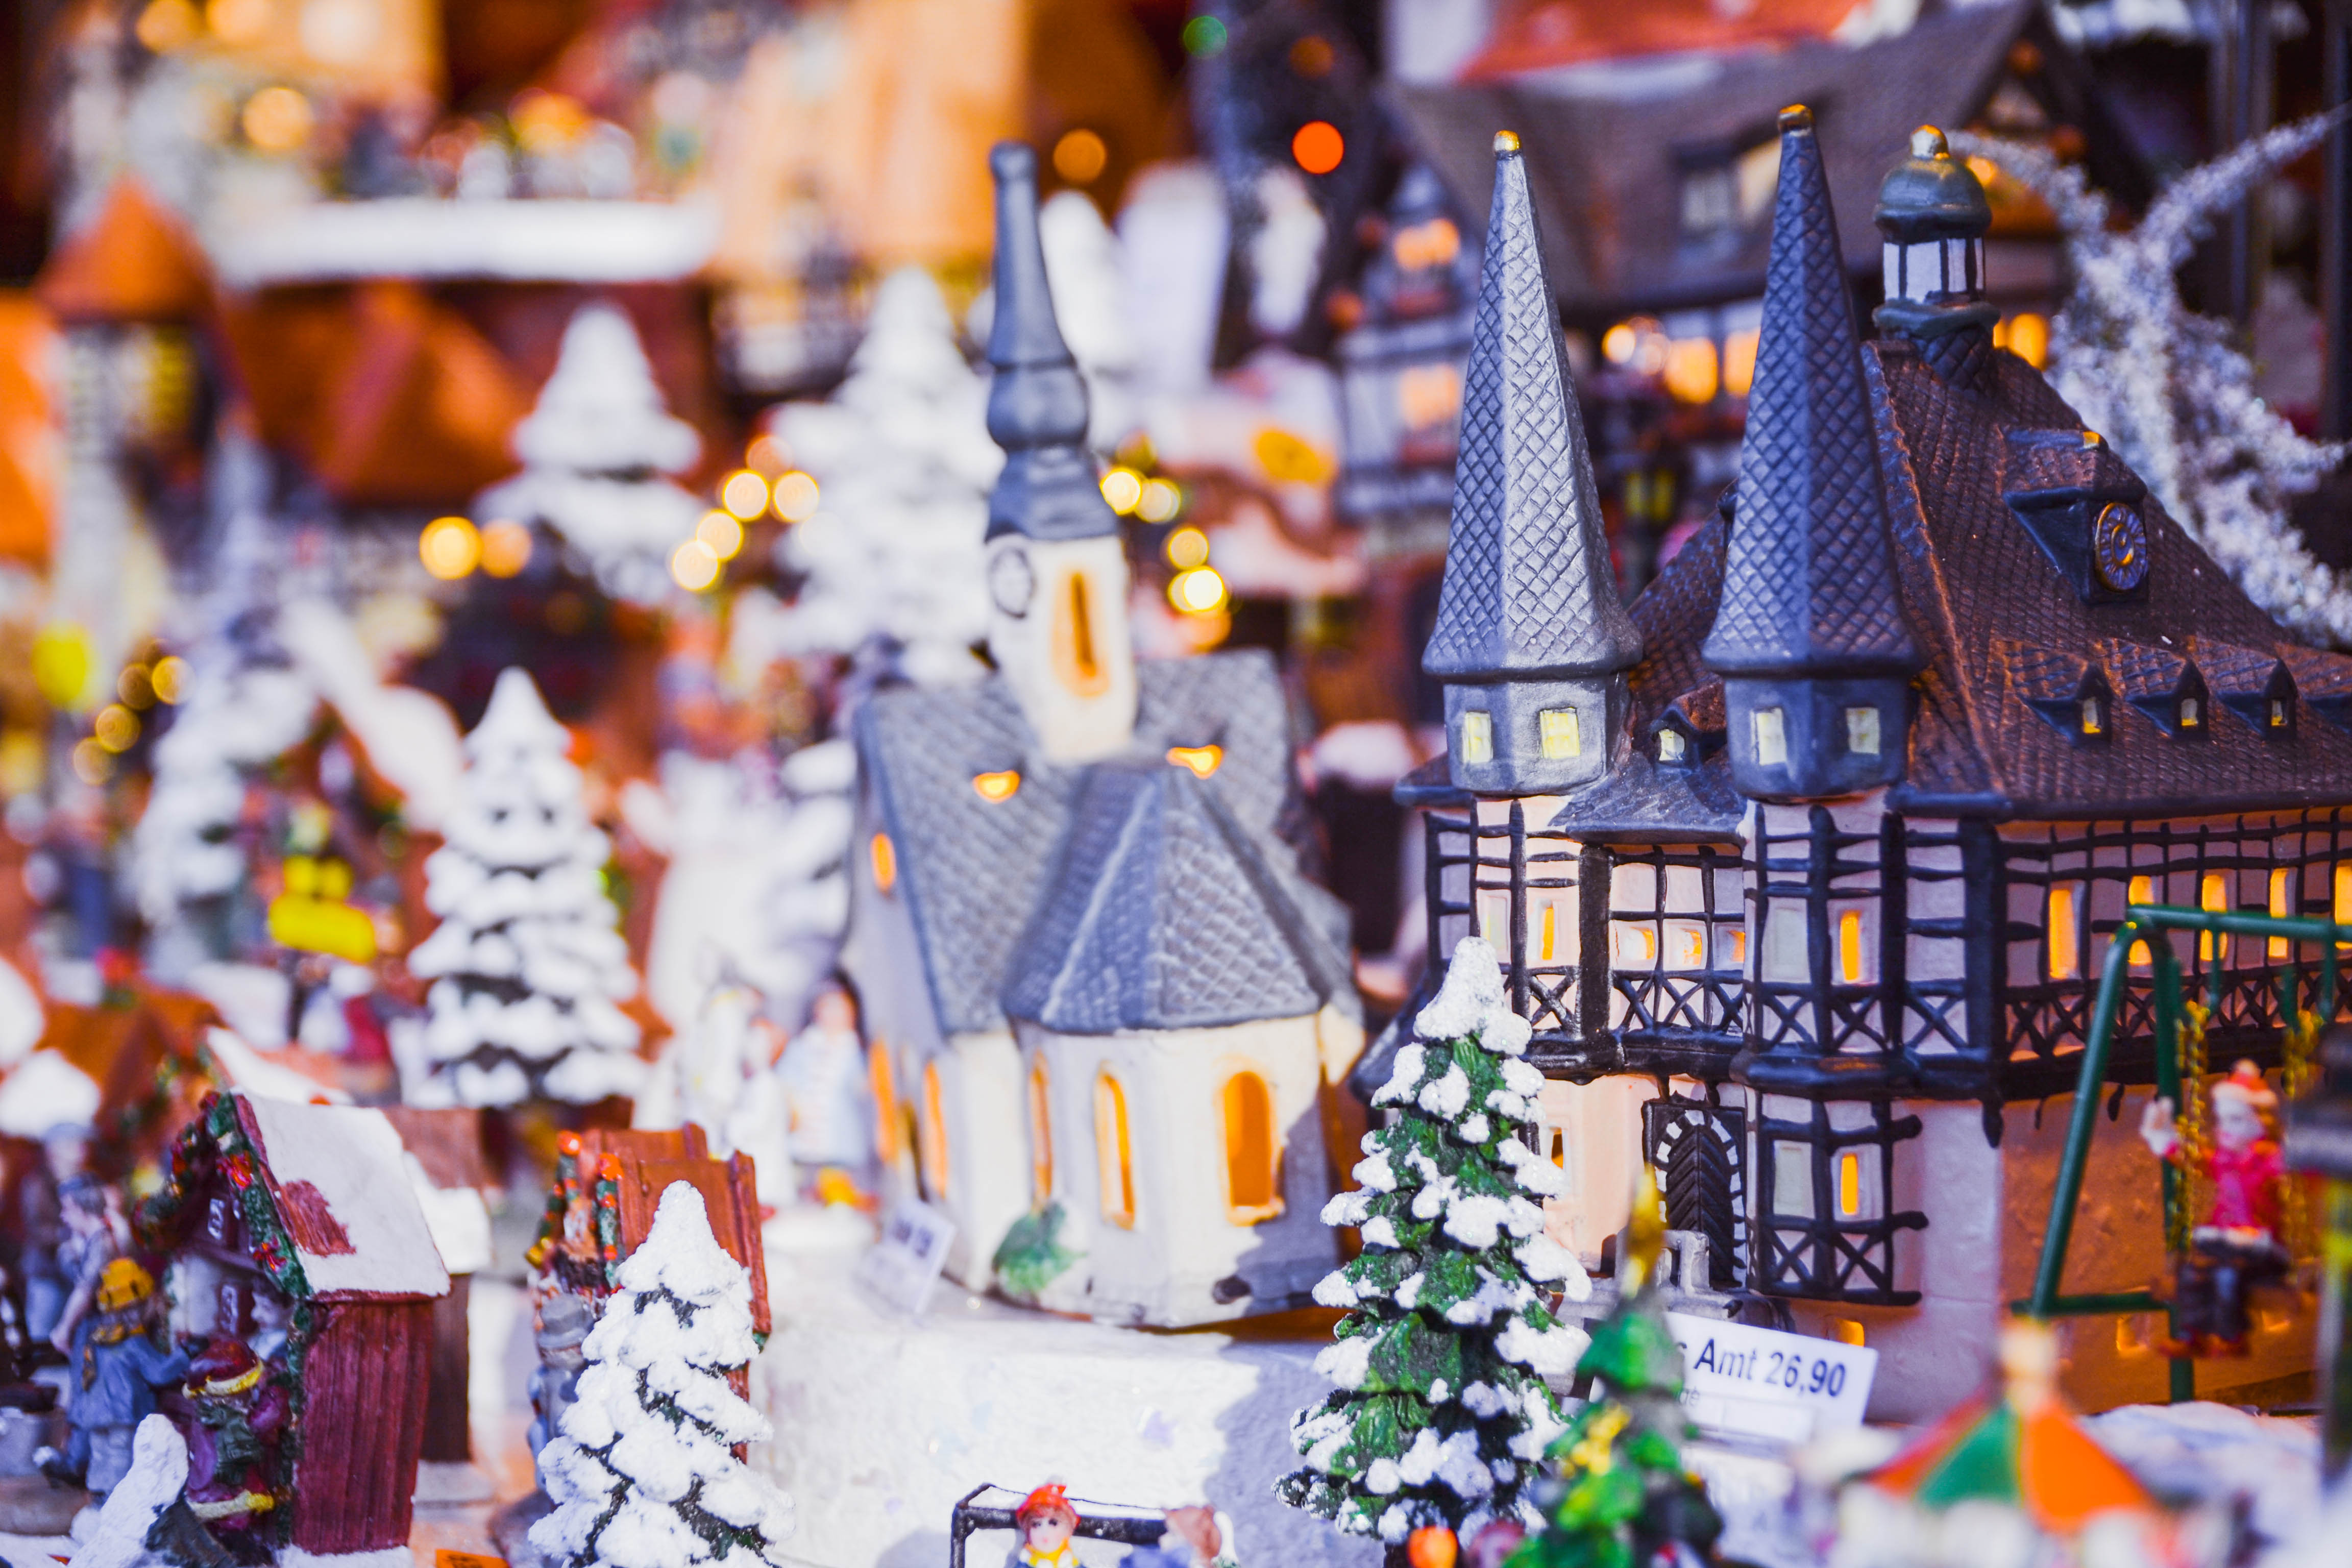 Decorations at Aachen, Germany's Christmas Market